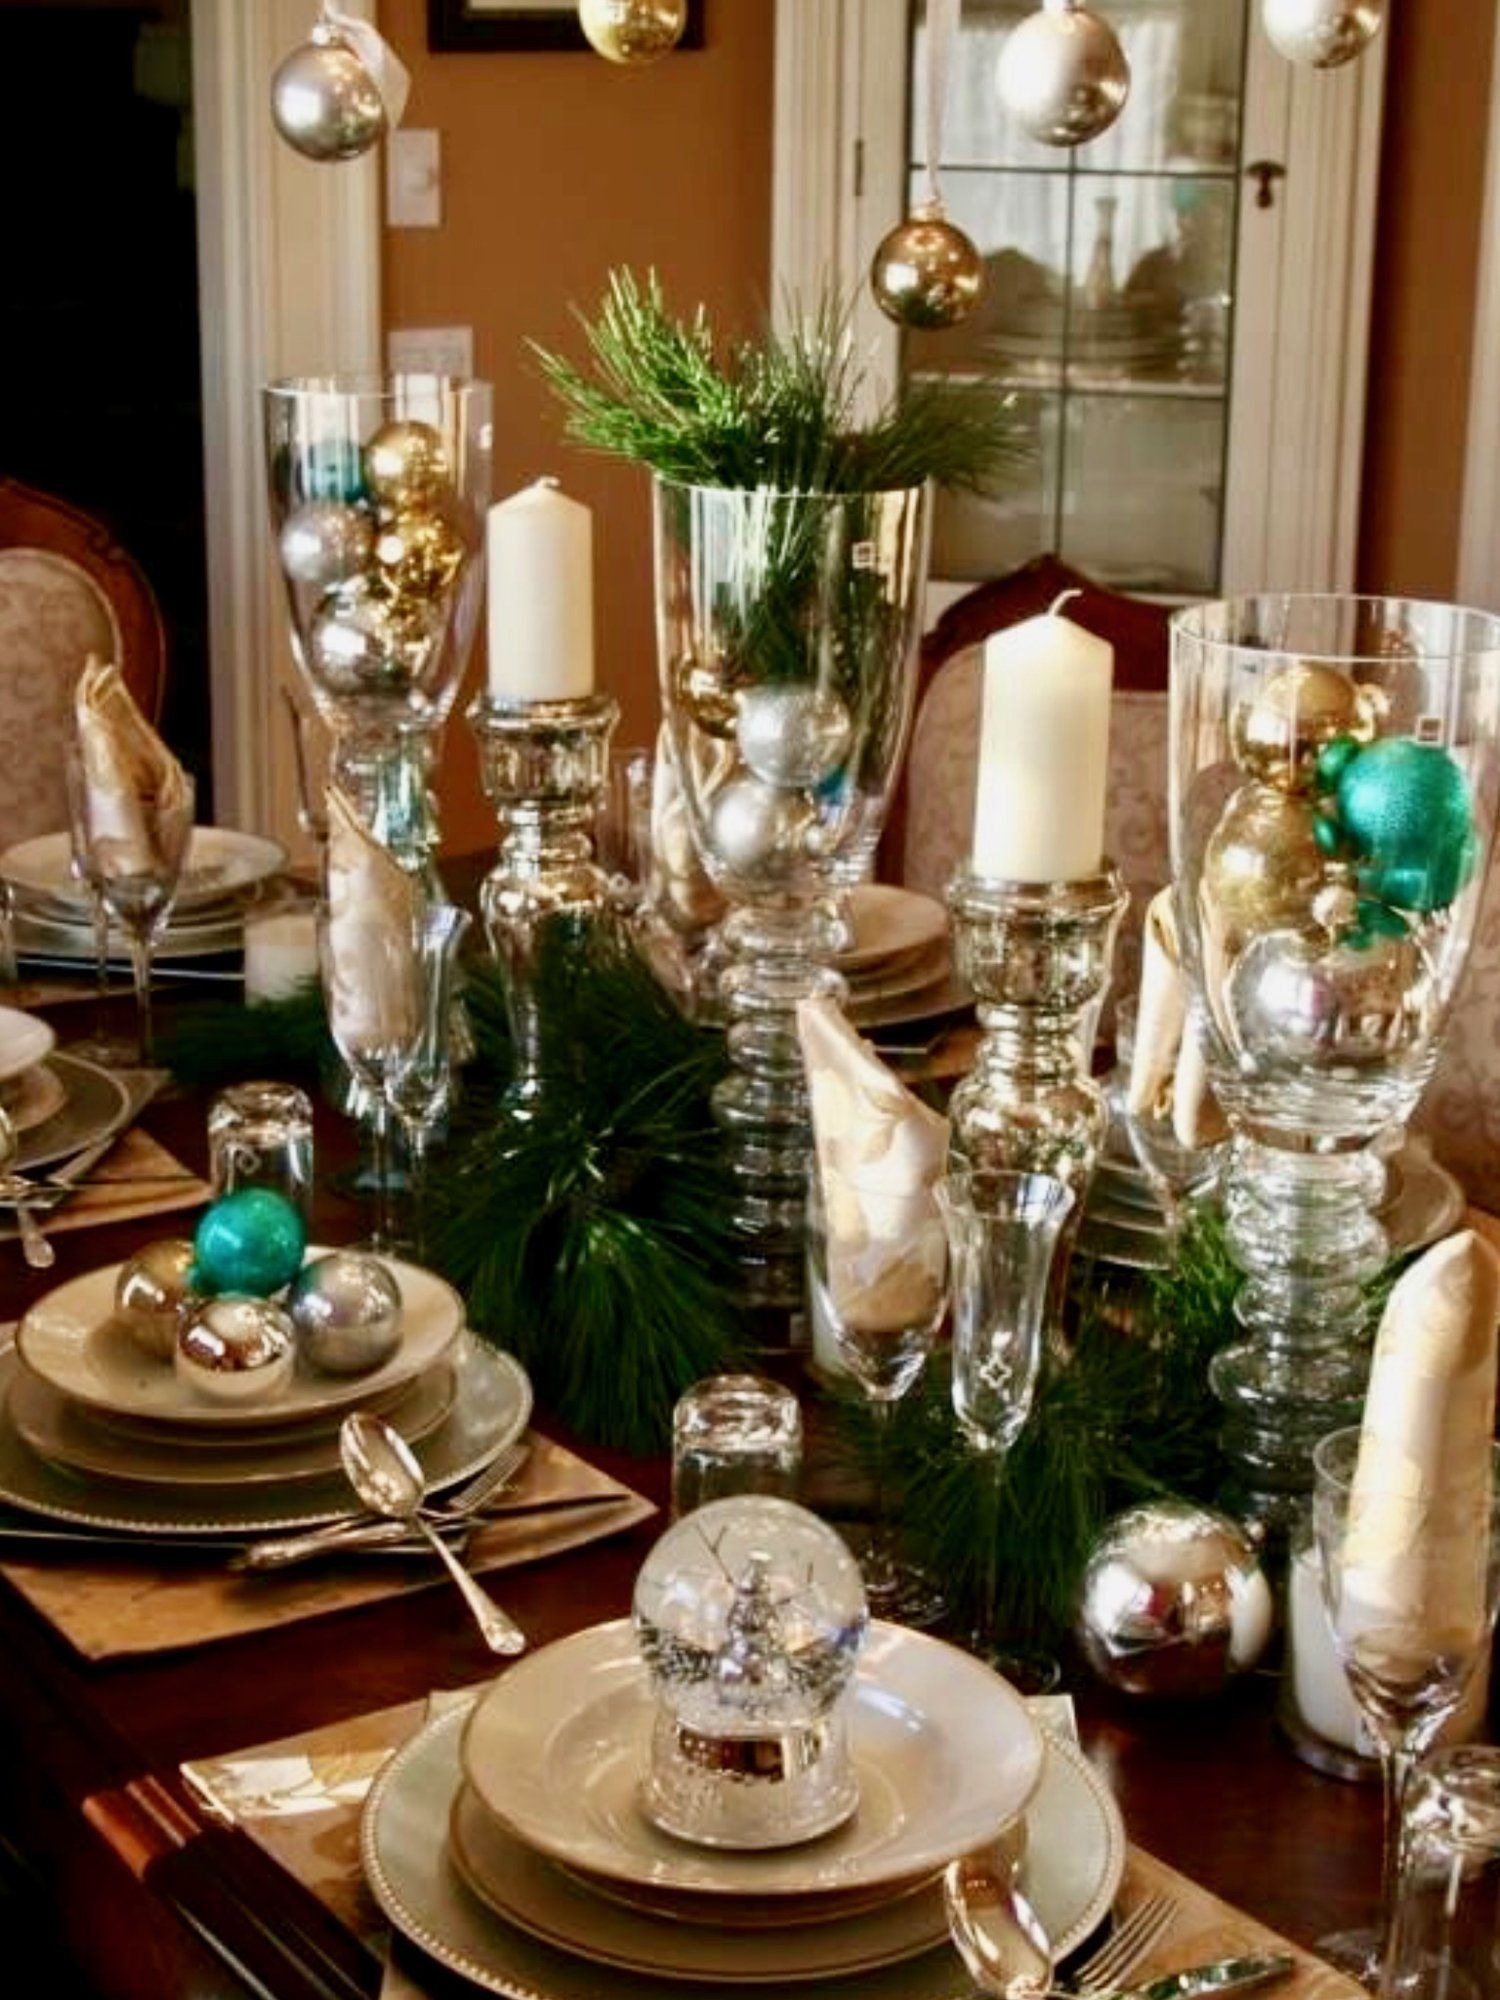 Top Christmas Table Decorations From Pinterest And Instagram Styleestate Christmas Table Settings Holiday Tablescapes Christmas Table Decorations